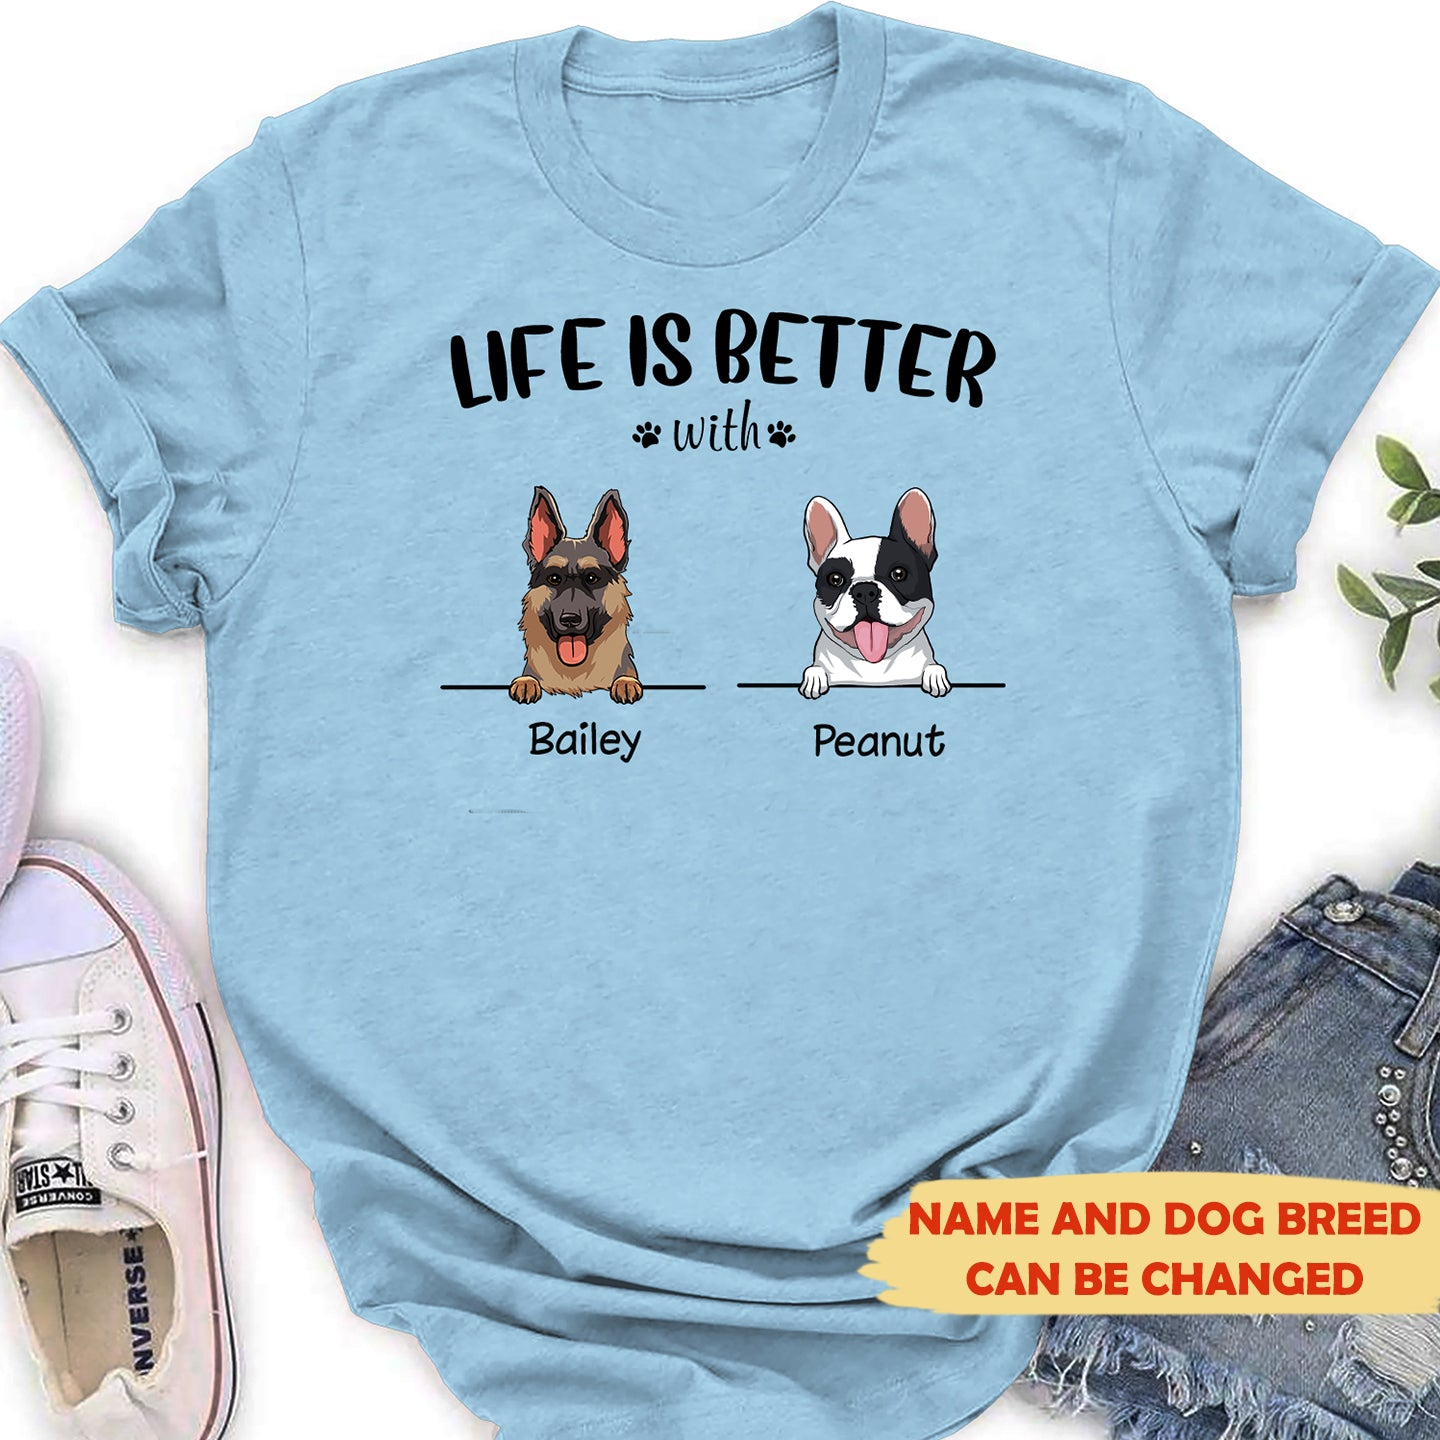 Life is better - Personalized Classic Women's T-shirt